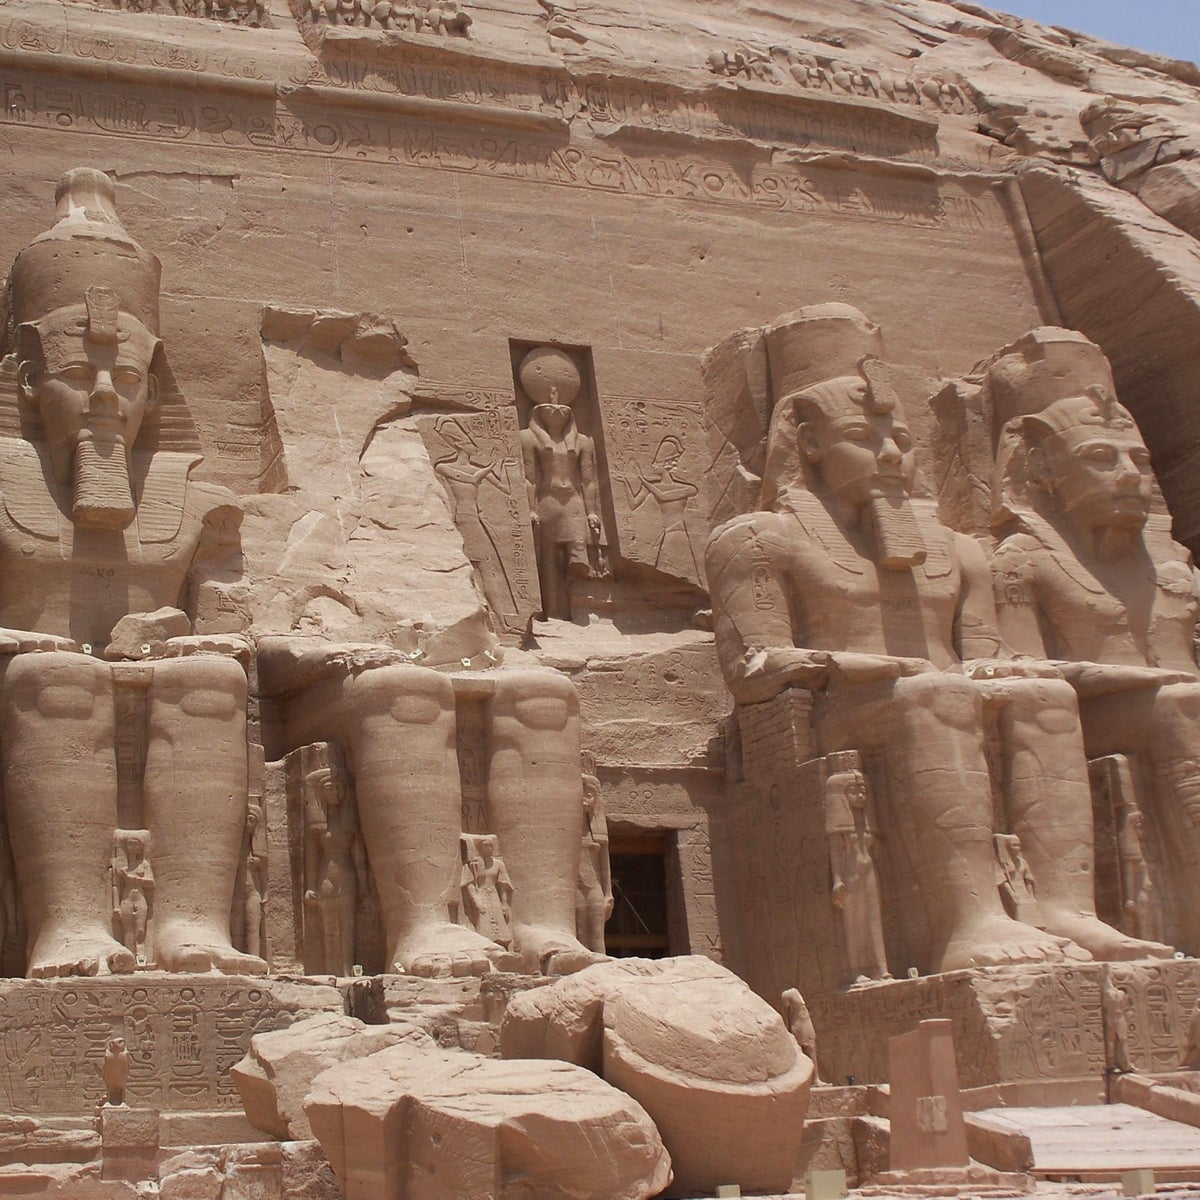 Temple of Ramesses II, 13th century B.C.E.: Photo shows four sitting pharaoh figures carved in stone, three quite complete from headdresses to feet and one missing everything from the hips up.